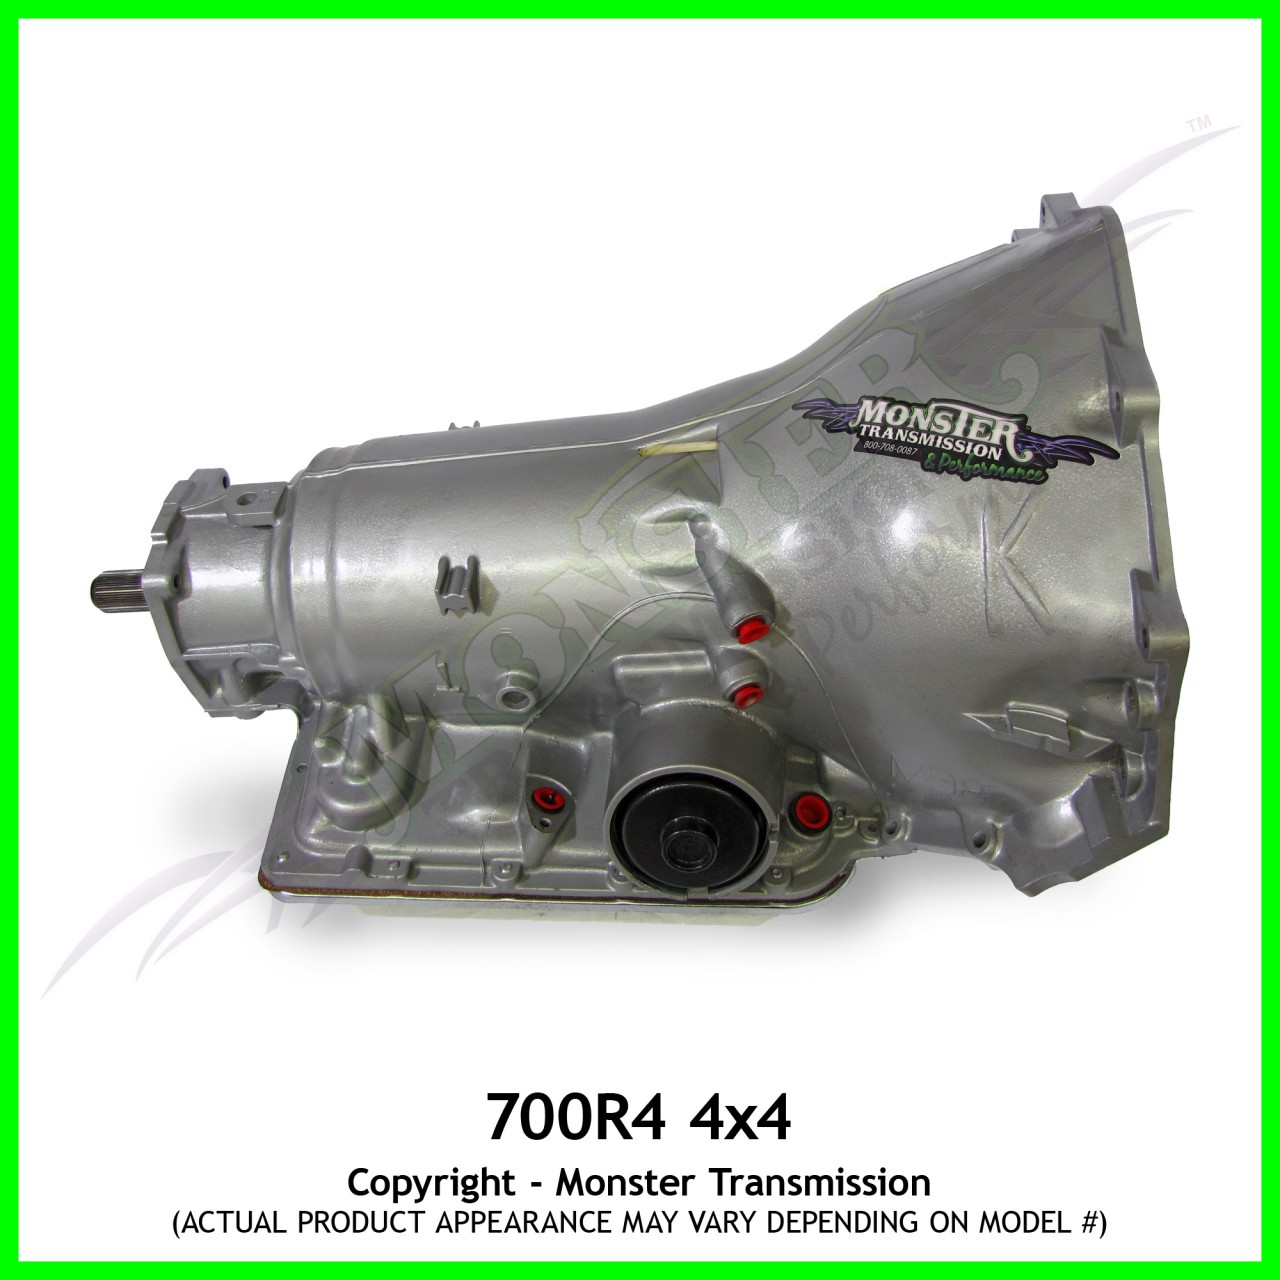 hight resolution of 700r4 transmission super duty 4wd 700r4 transmission rebuilt 700r4 transmissions gm 700r4 transmission performance 700r4 700r4 rebuild